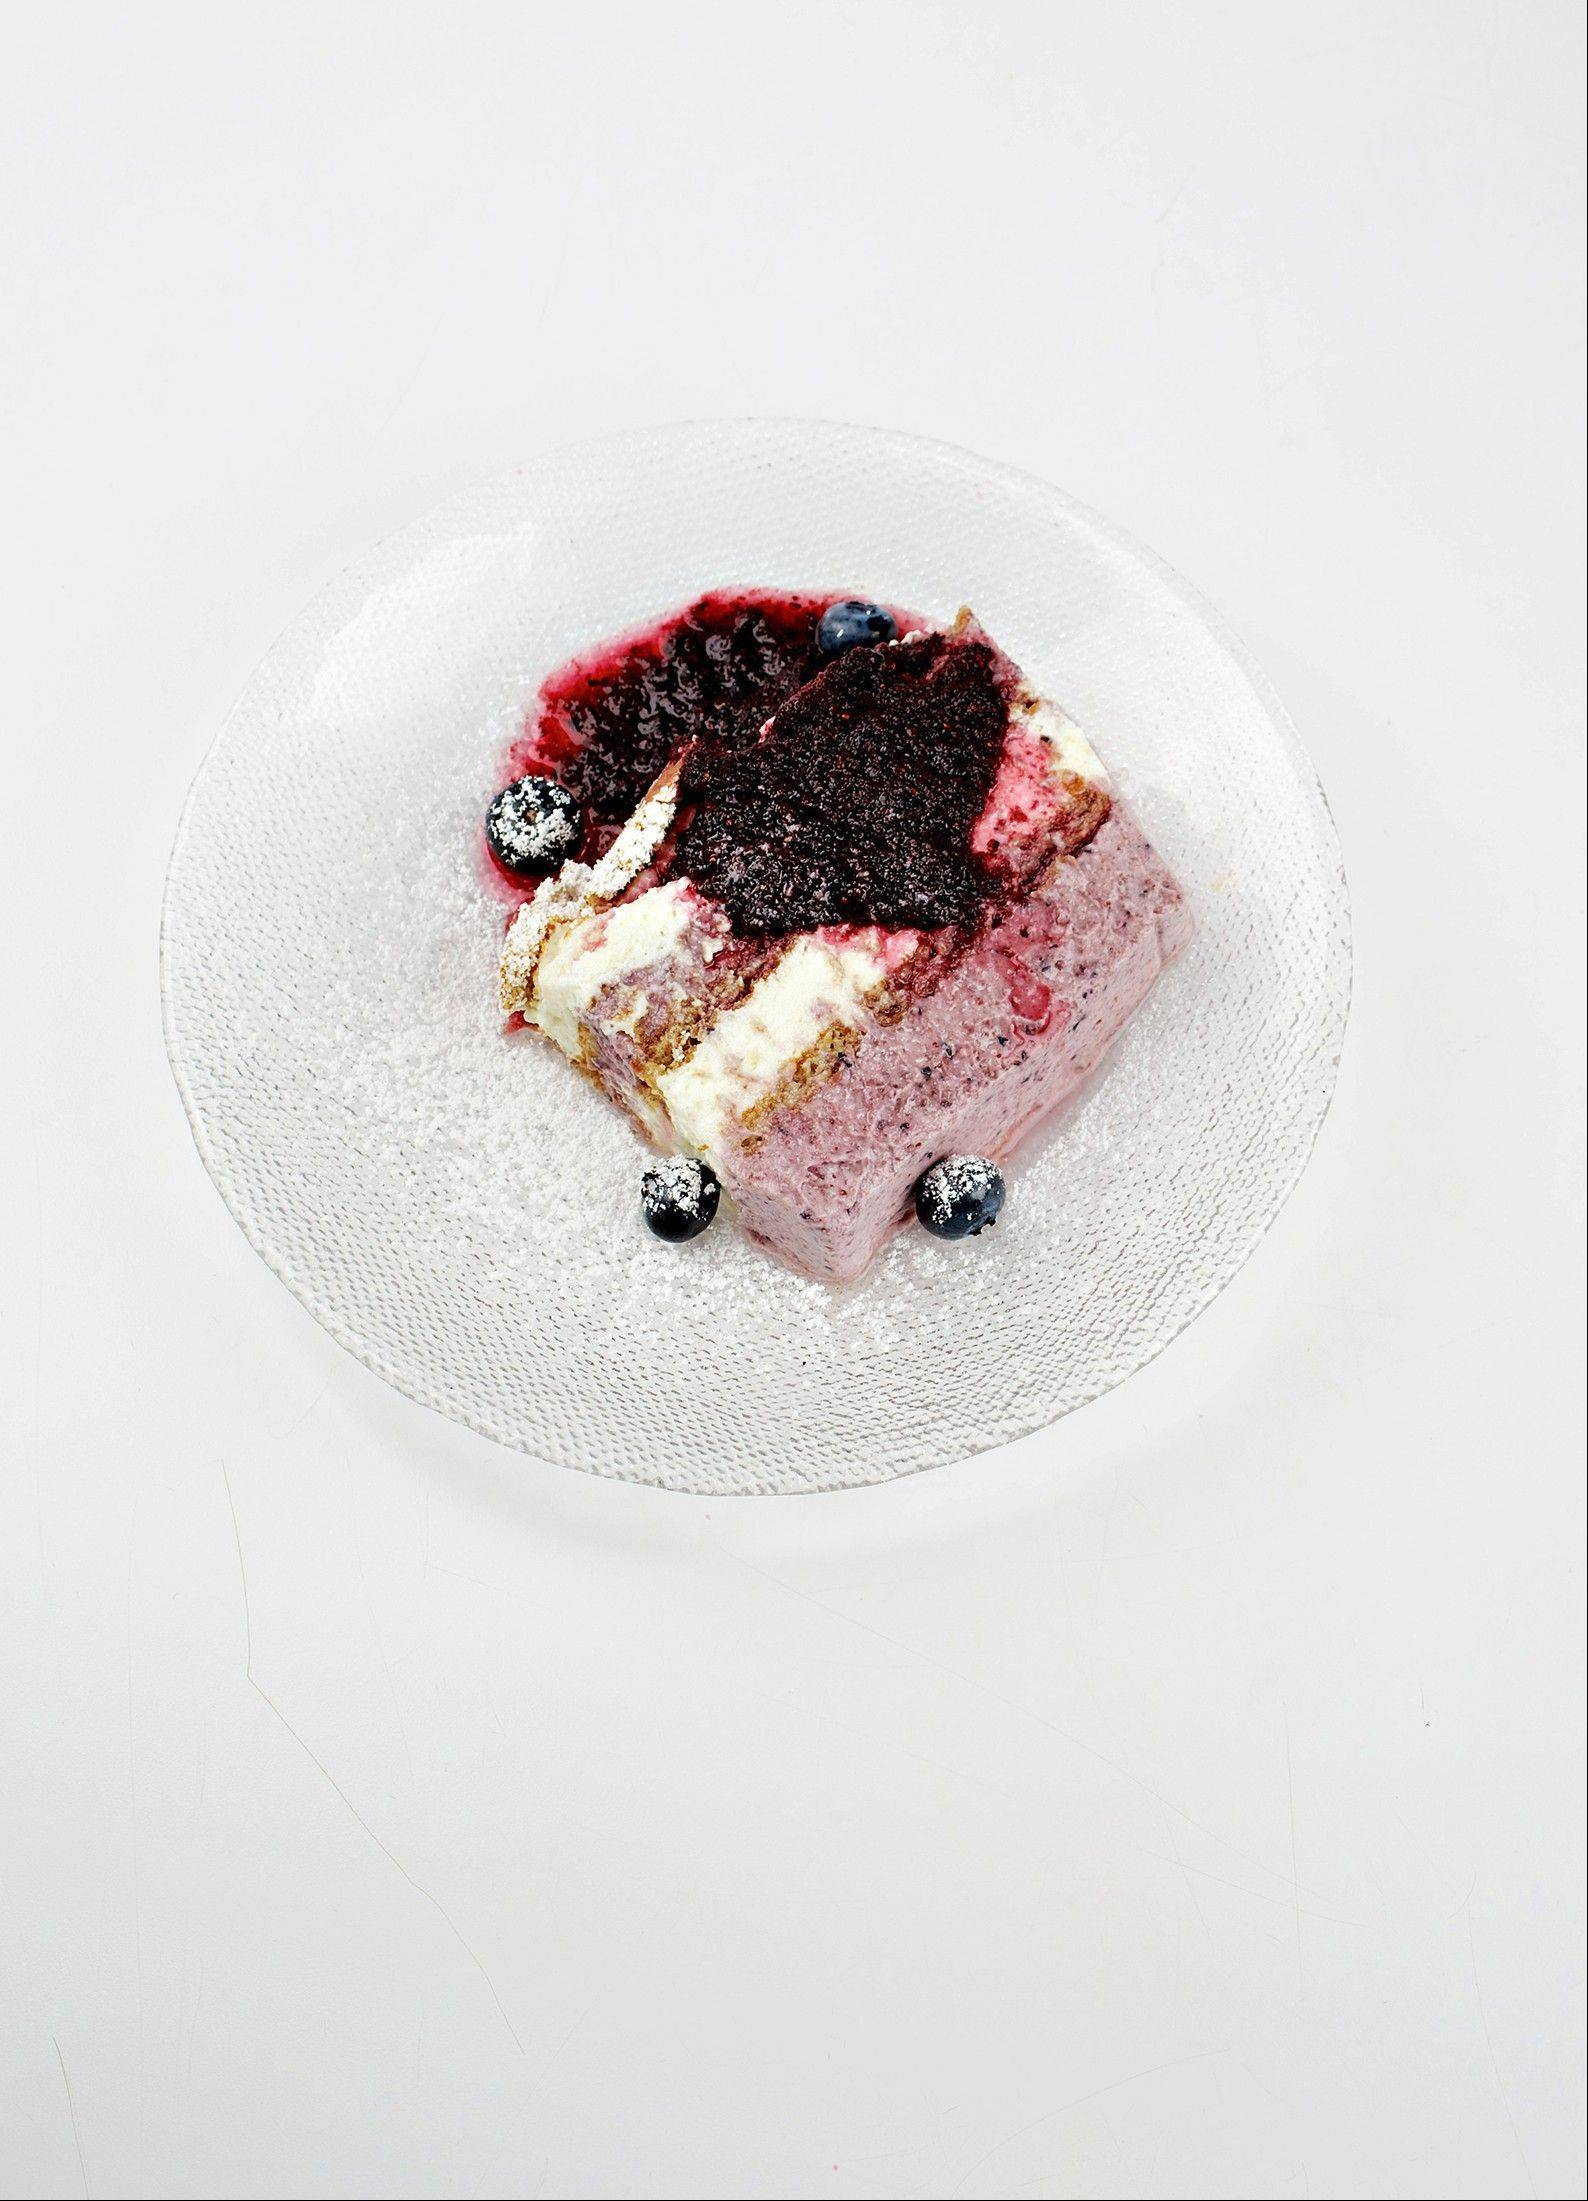 Blueberry and Lemon-Cream Icebox Cake contains fruity, creamy layers takes and is prepared sans oven.